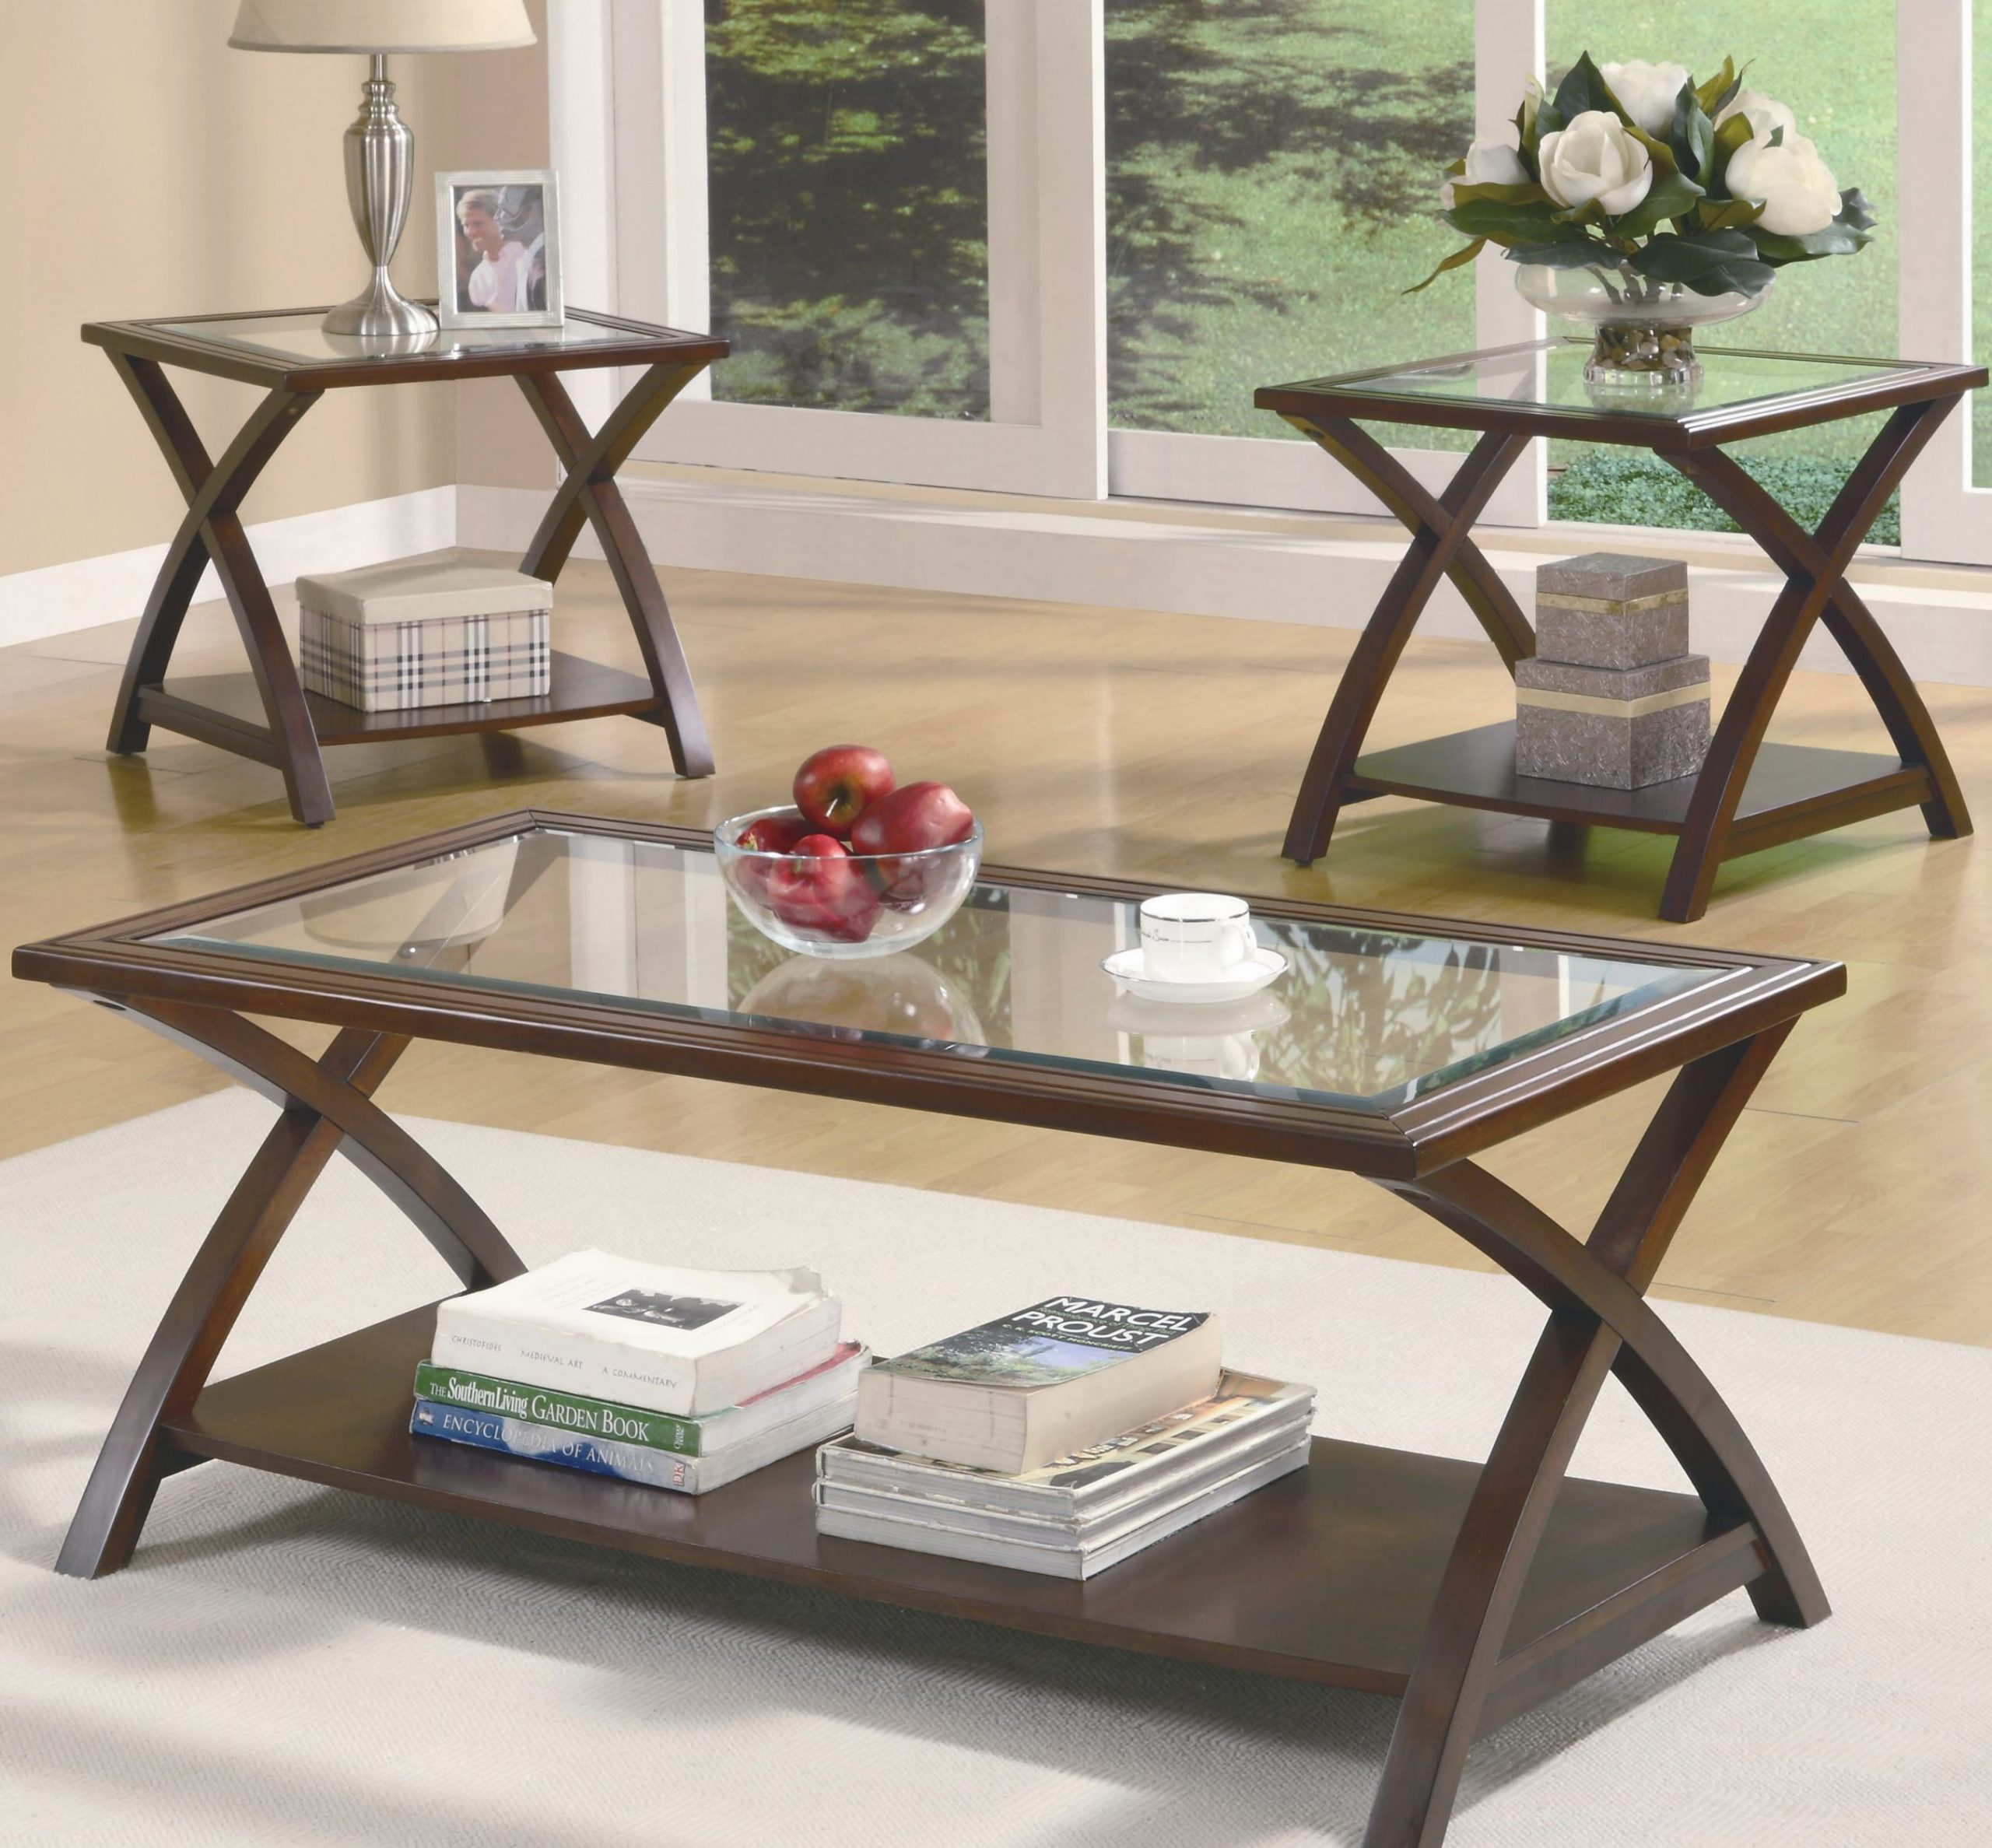 Cheap Accent Table Sets & End Table Decor. Good Living Room throughout Accent Tables For Living Room